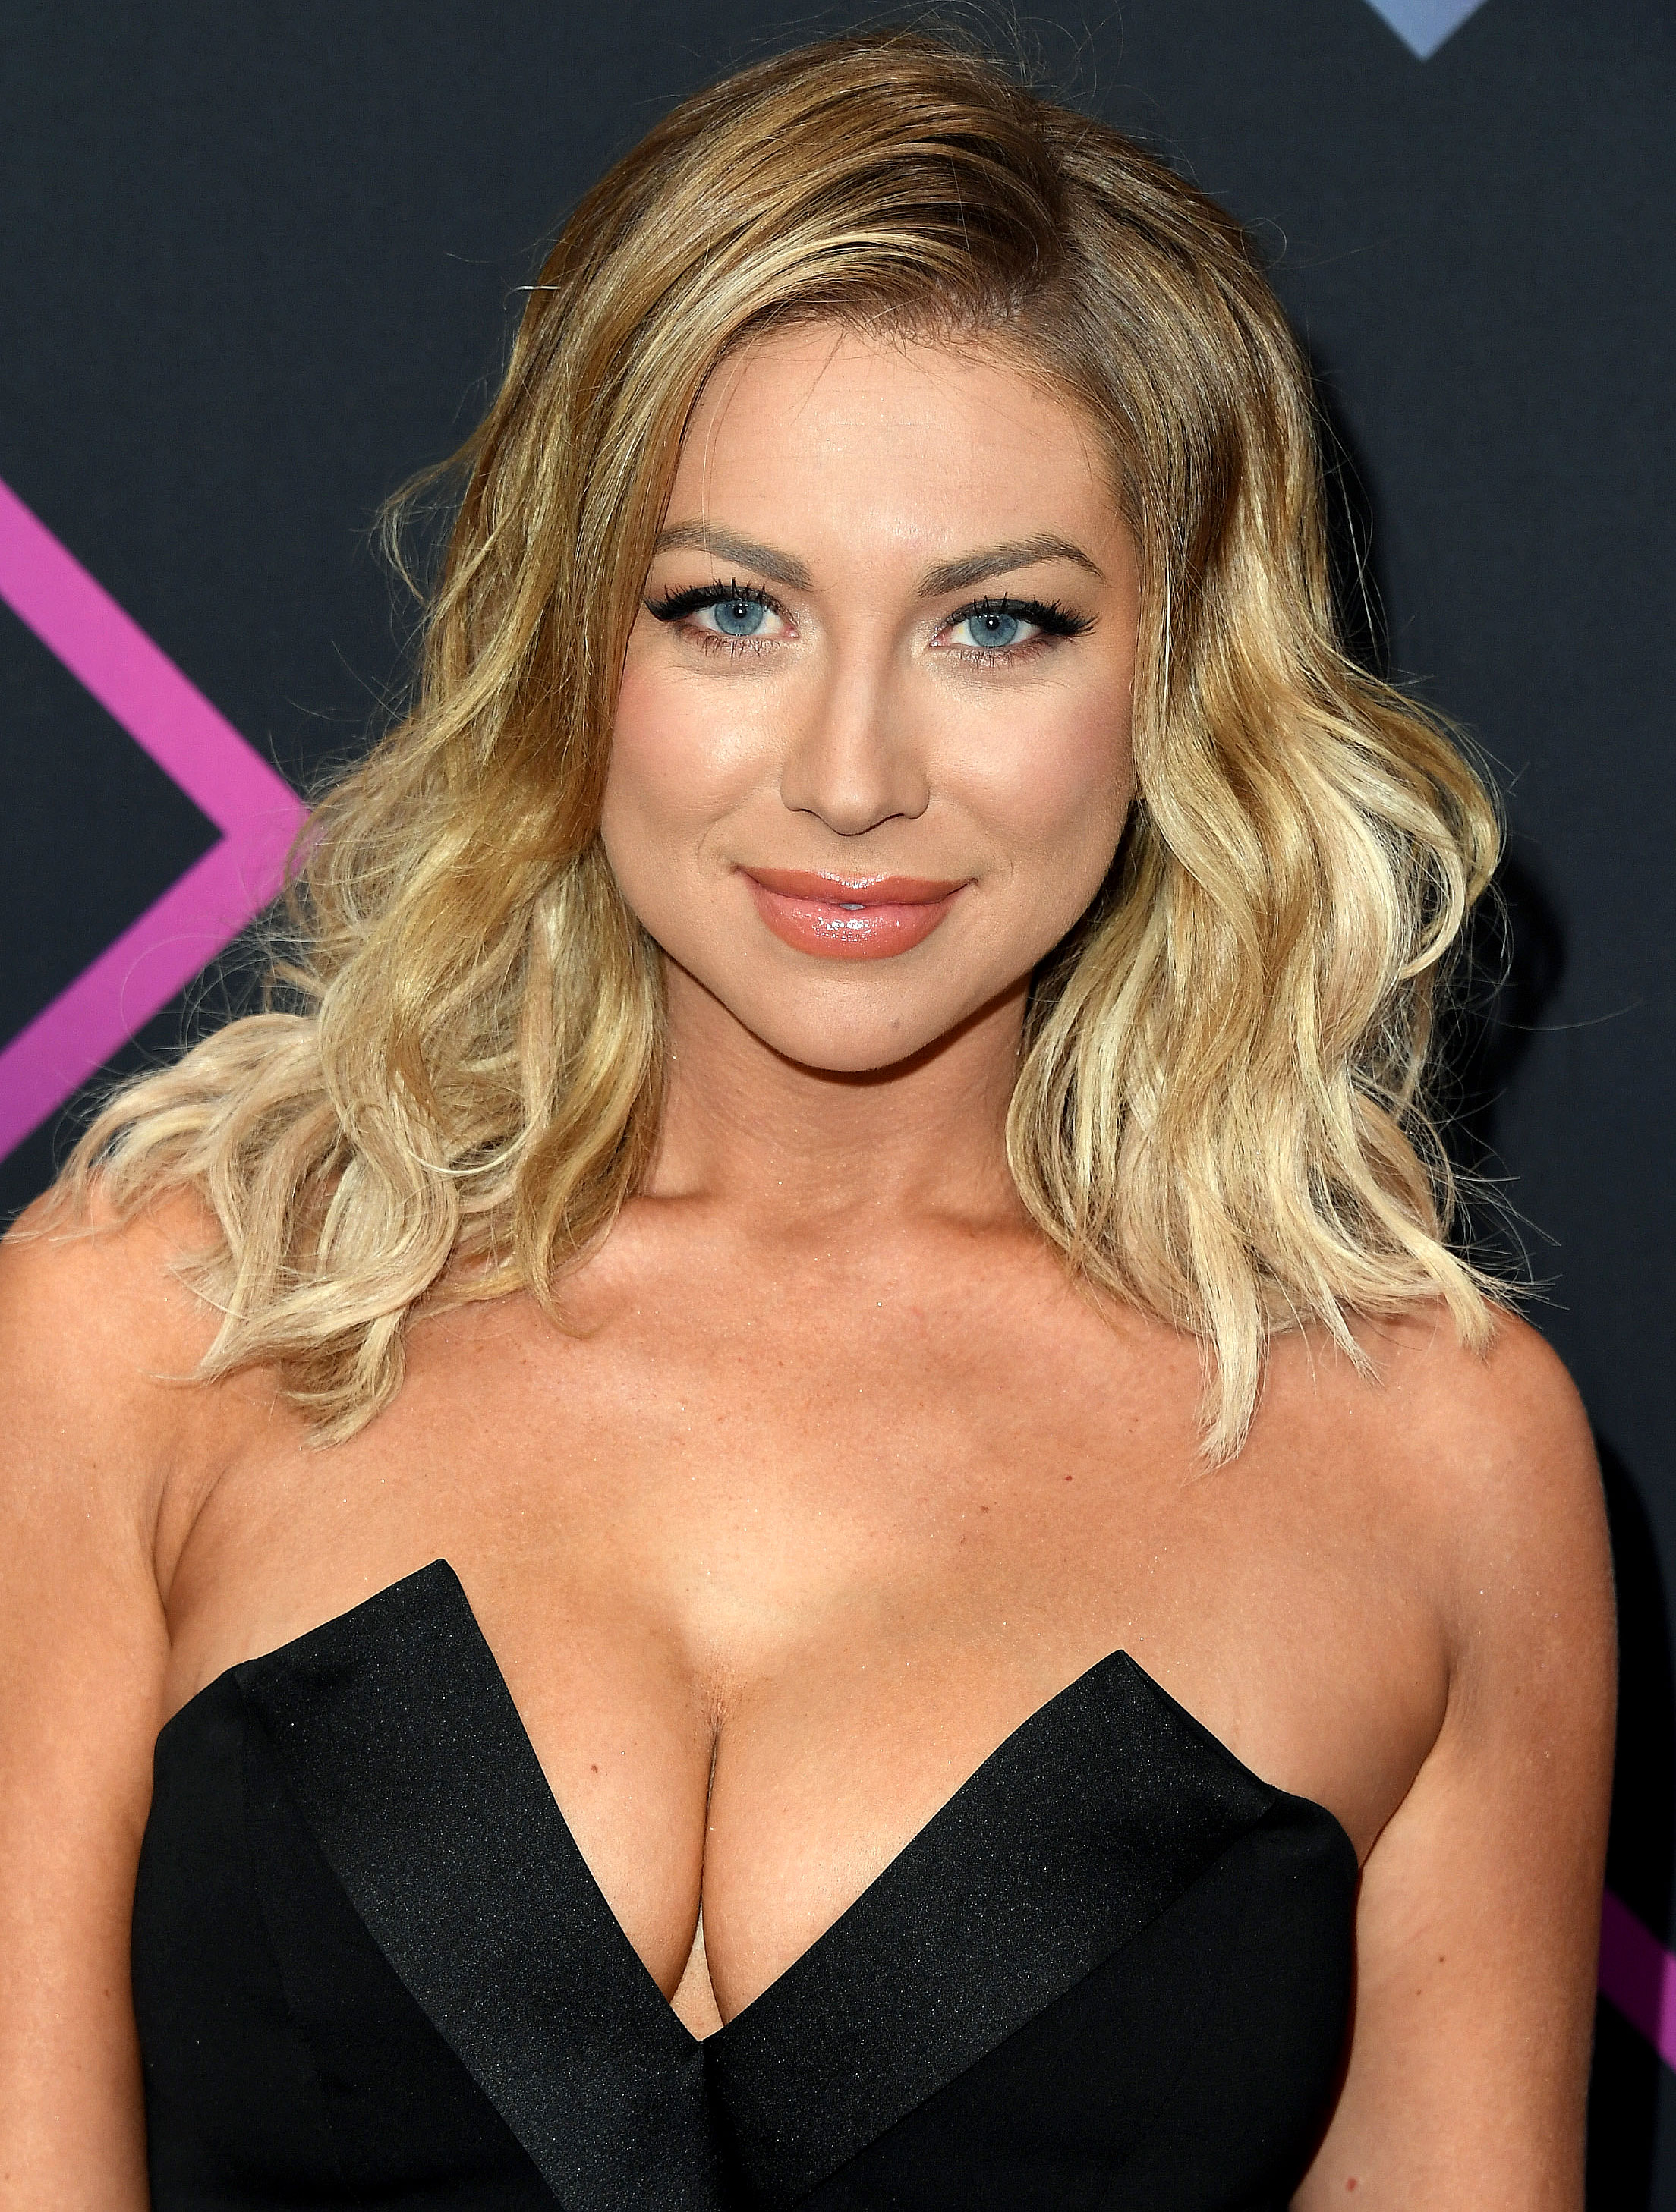 Stassi Schroeder Stars' Hangover Cures - Stassi Schroeder attends the People's Choice Awards 2018 at Barker Hangar on November 11, 2018 in Santa Monica, California.